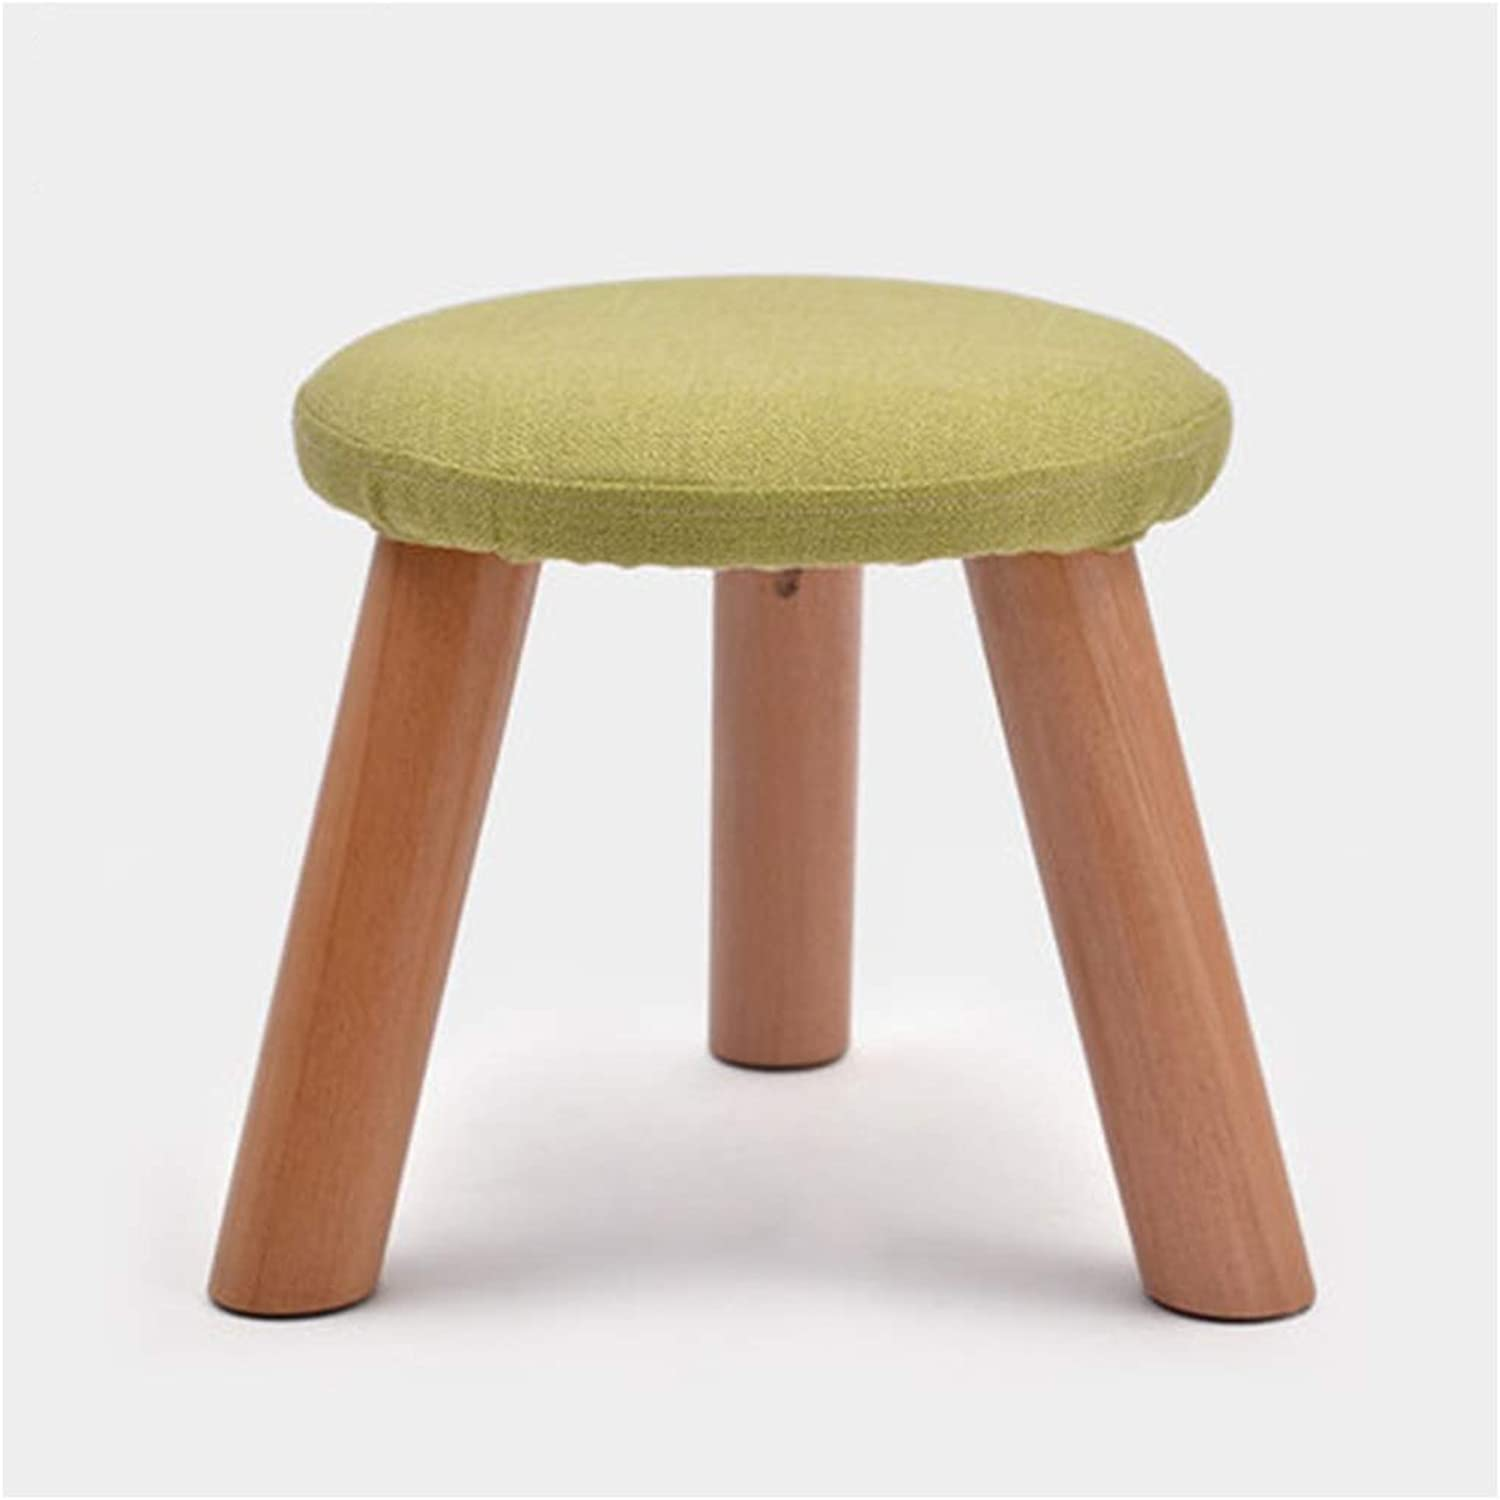 B.YDCM Wooden Bench- Fashion shoes Bench Stool Solid Wood Footstool Stool Stool Stool Fabric Bench Sofa Bench Coffee Table Stool - Wood Bench (color   B, Size   Large)